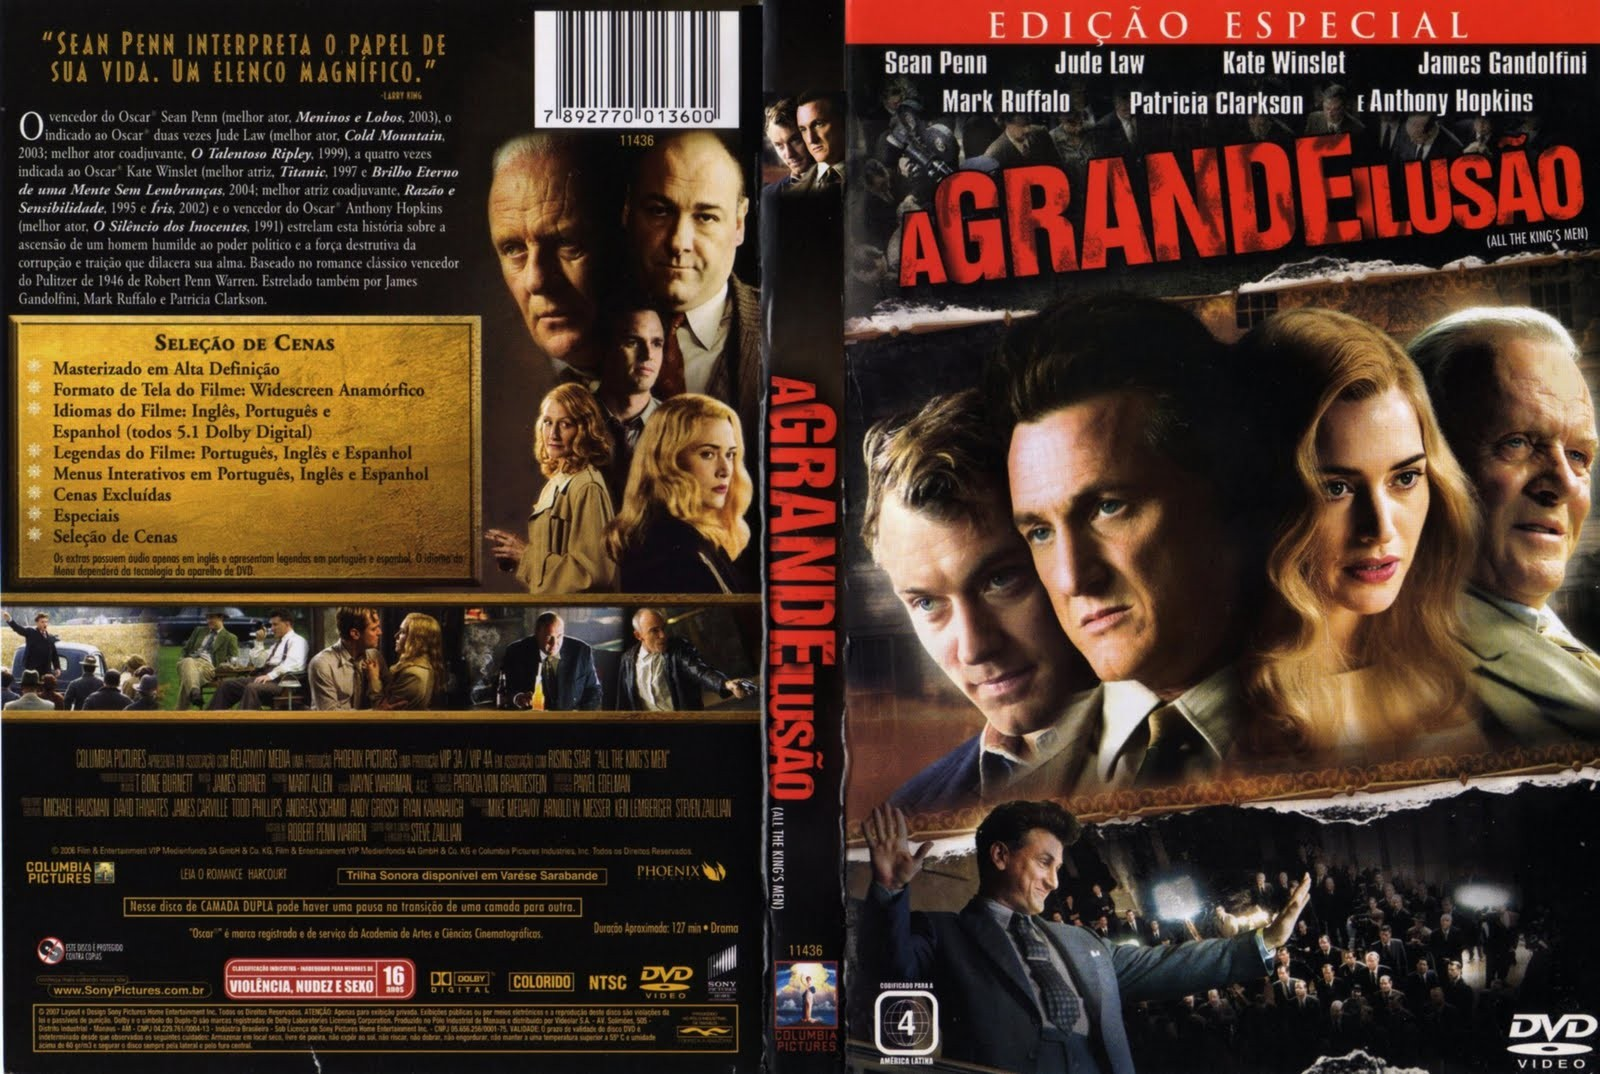 DVD LACRADO A GRANDE ILUSAO ANTHONY HOPKINS SEAN PENN - AUDIO EM PORTUGUES